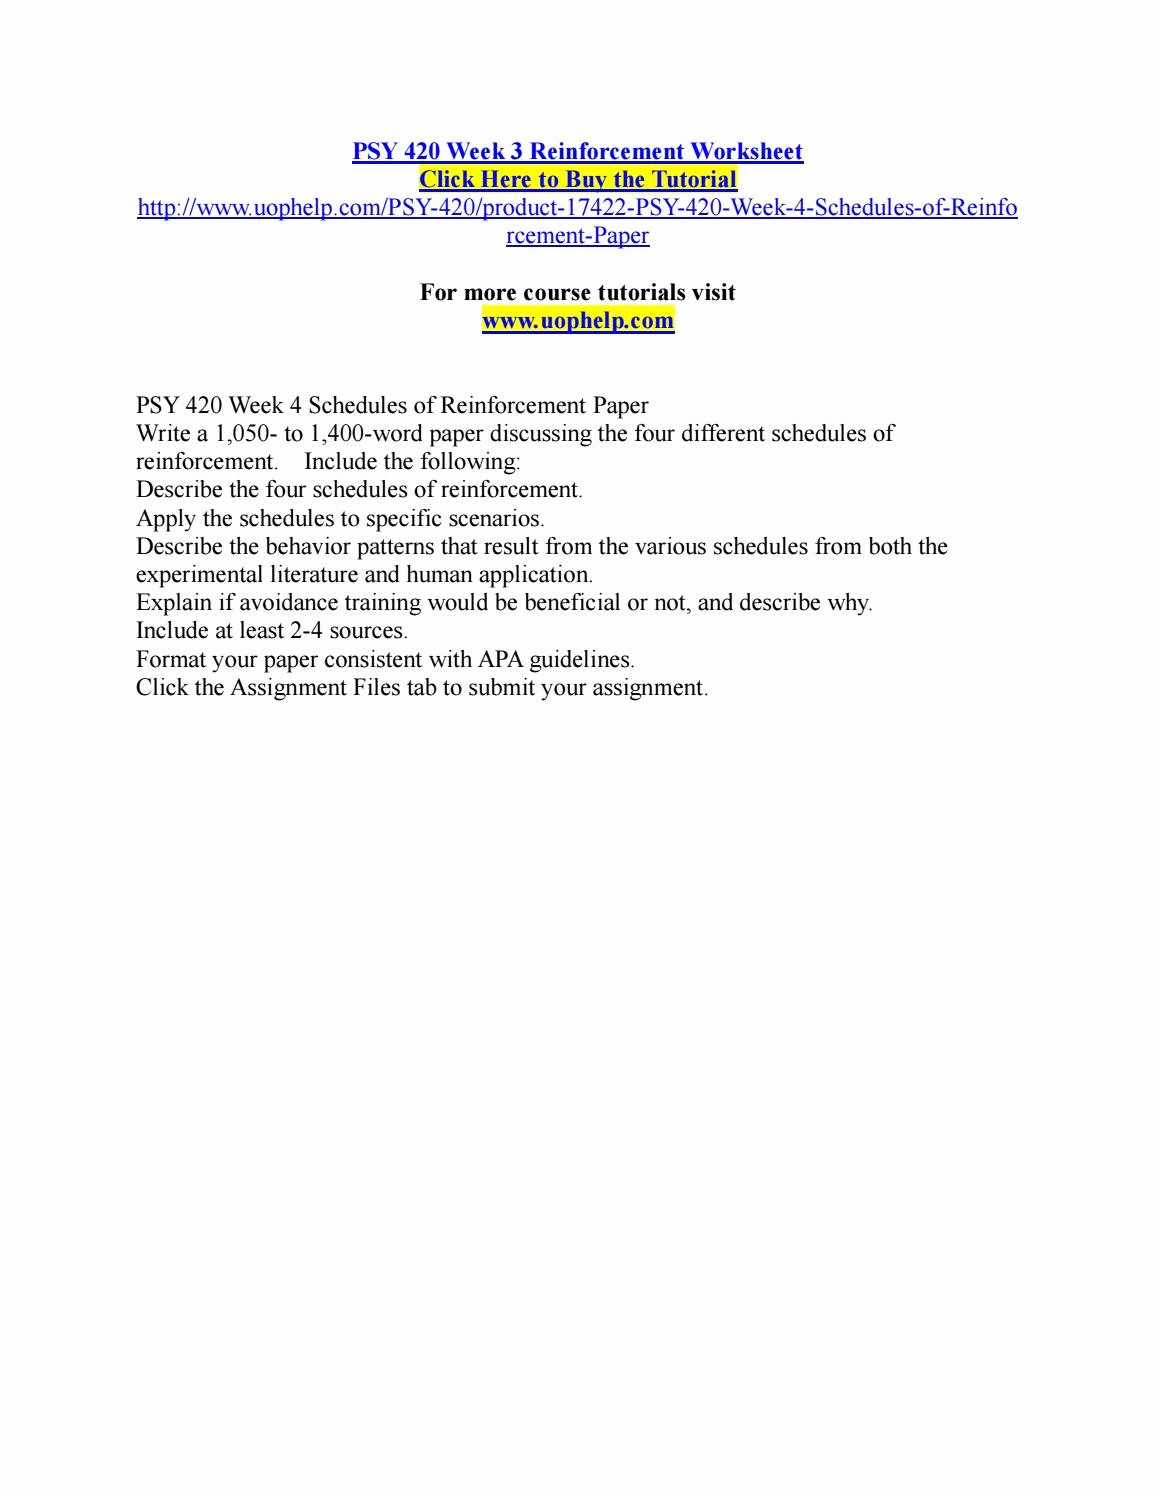 Schedules Of Reinforcement Worksheet Lovely Psy 420 Week 3 Reinforcement Worksheet by Pinck101 issuu